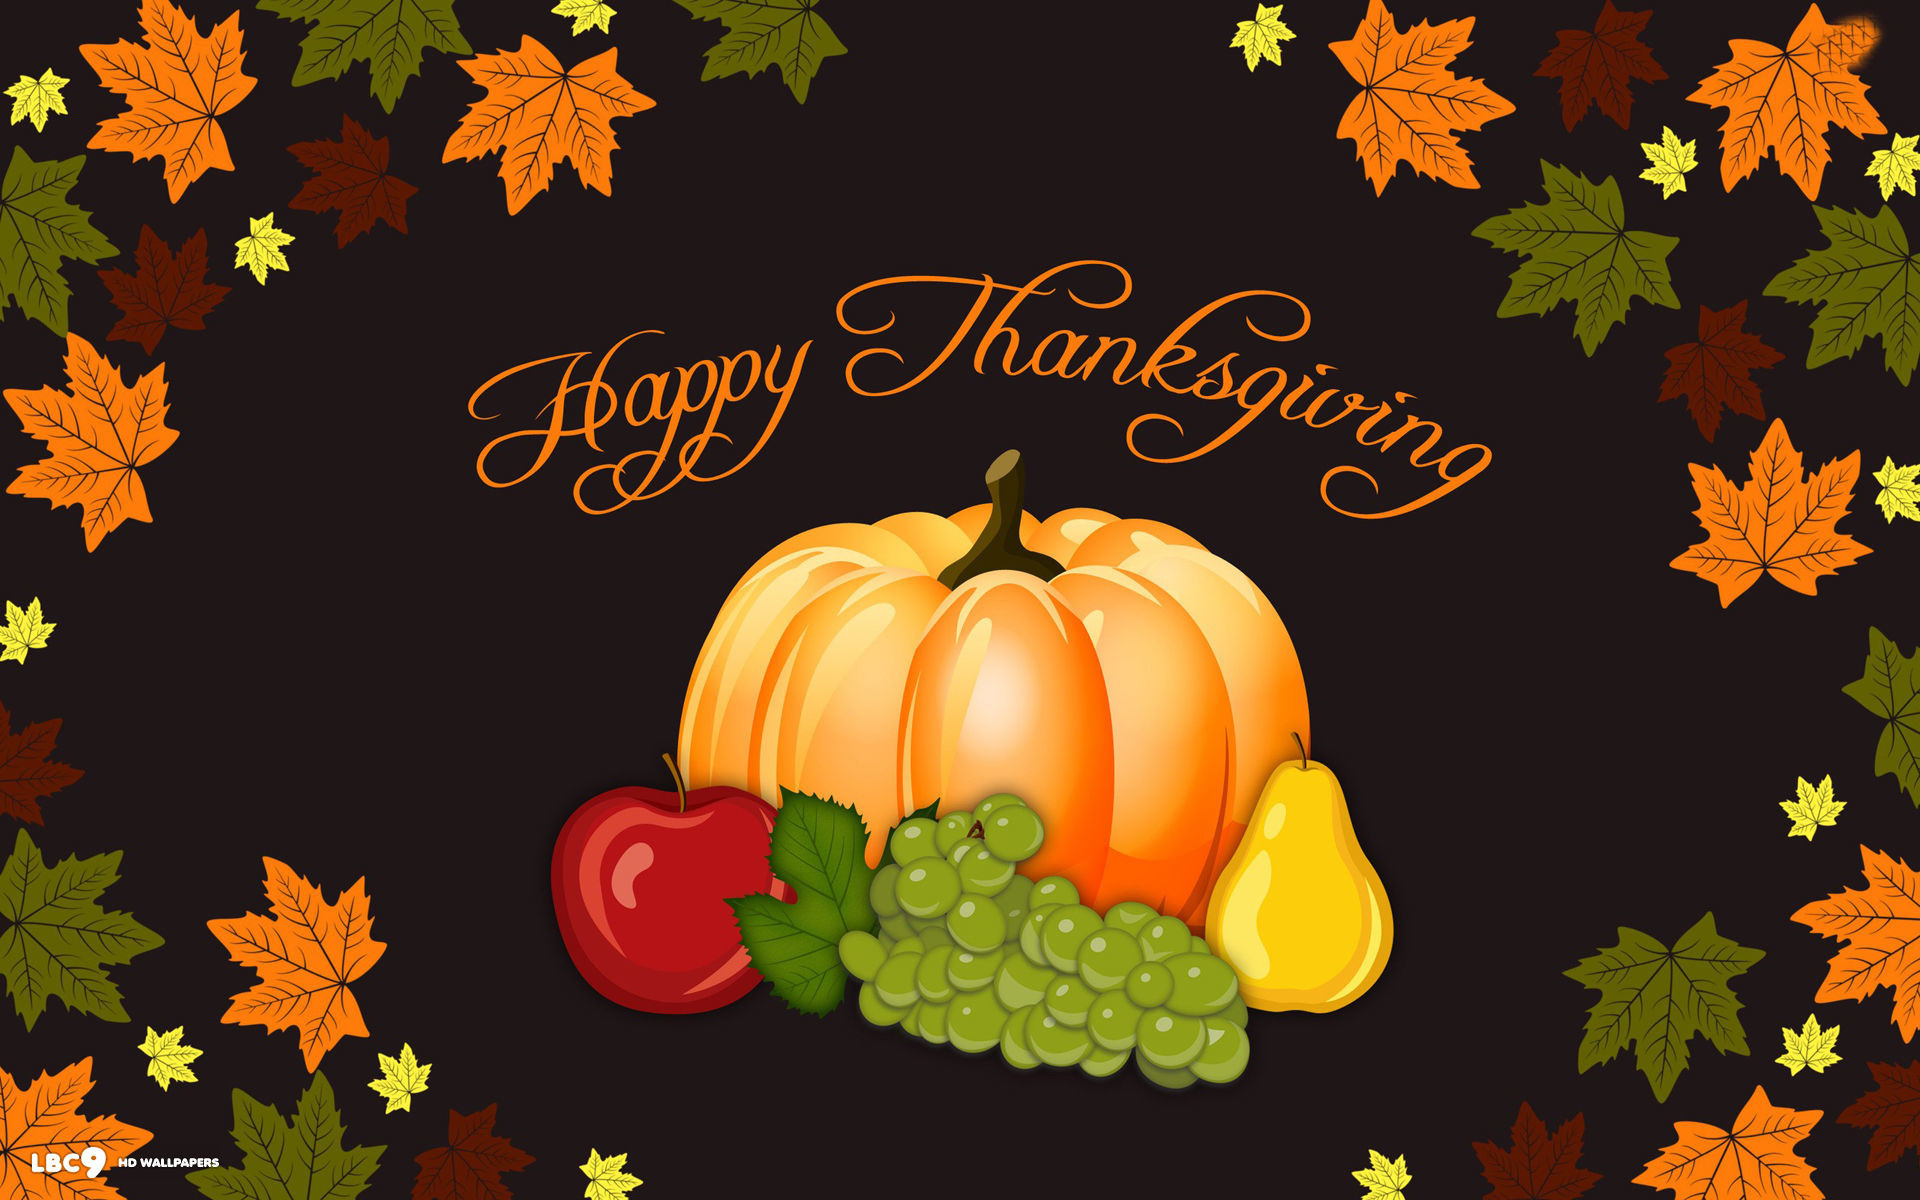 1920x1200 happy thanksgiving day vector art pumpkin autumn leaves holiday wallpaper